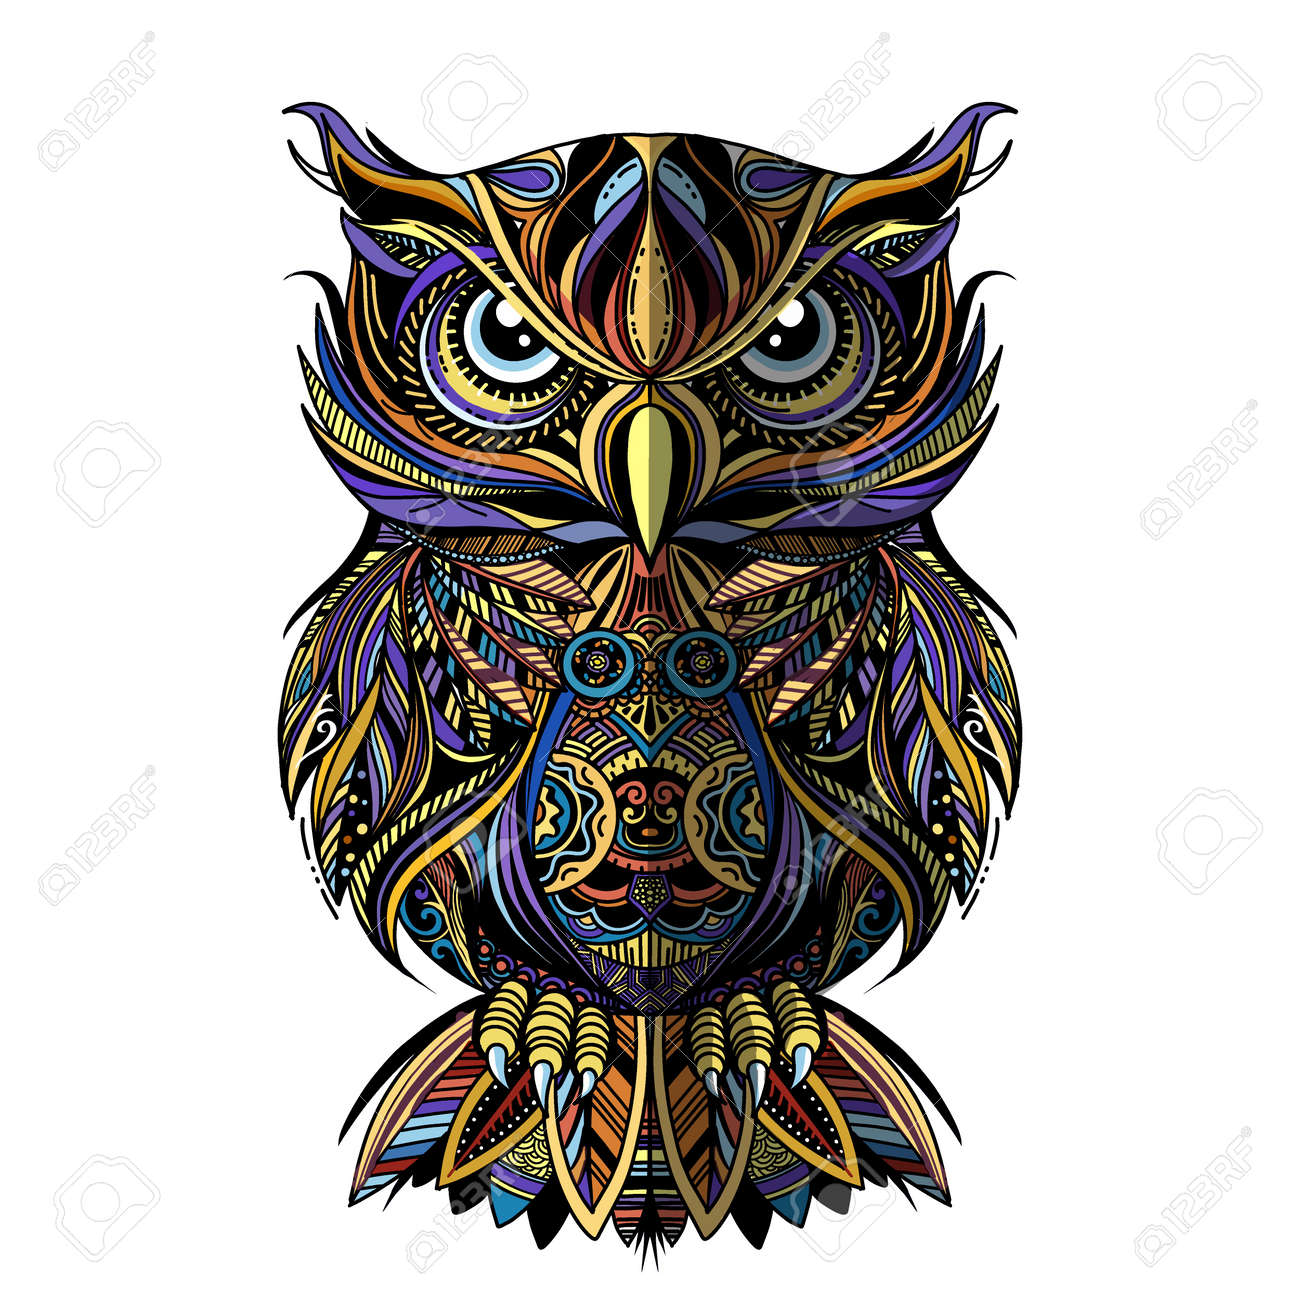 OWL drawn in style. Antistress freehand sketch drawing. Vector illustration. - 119012930